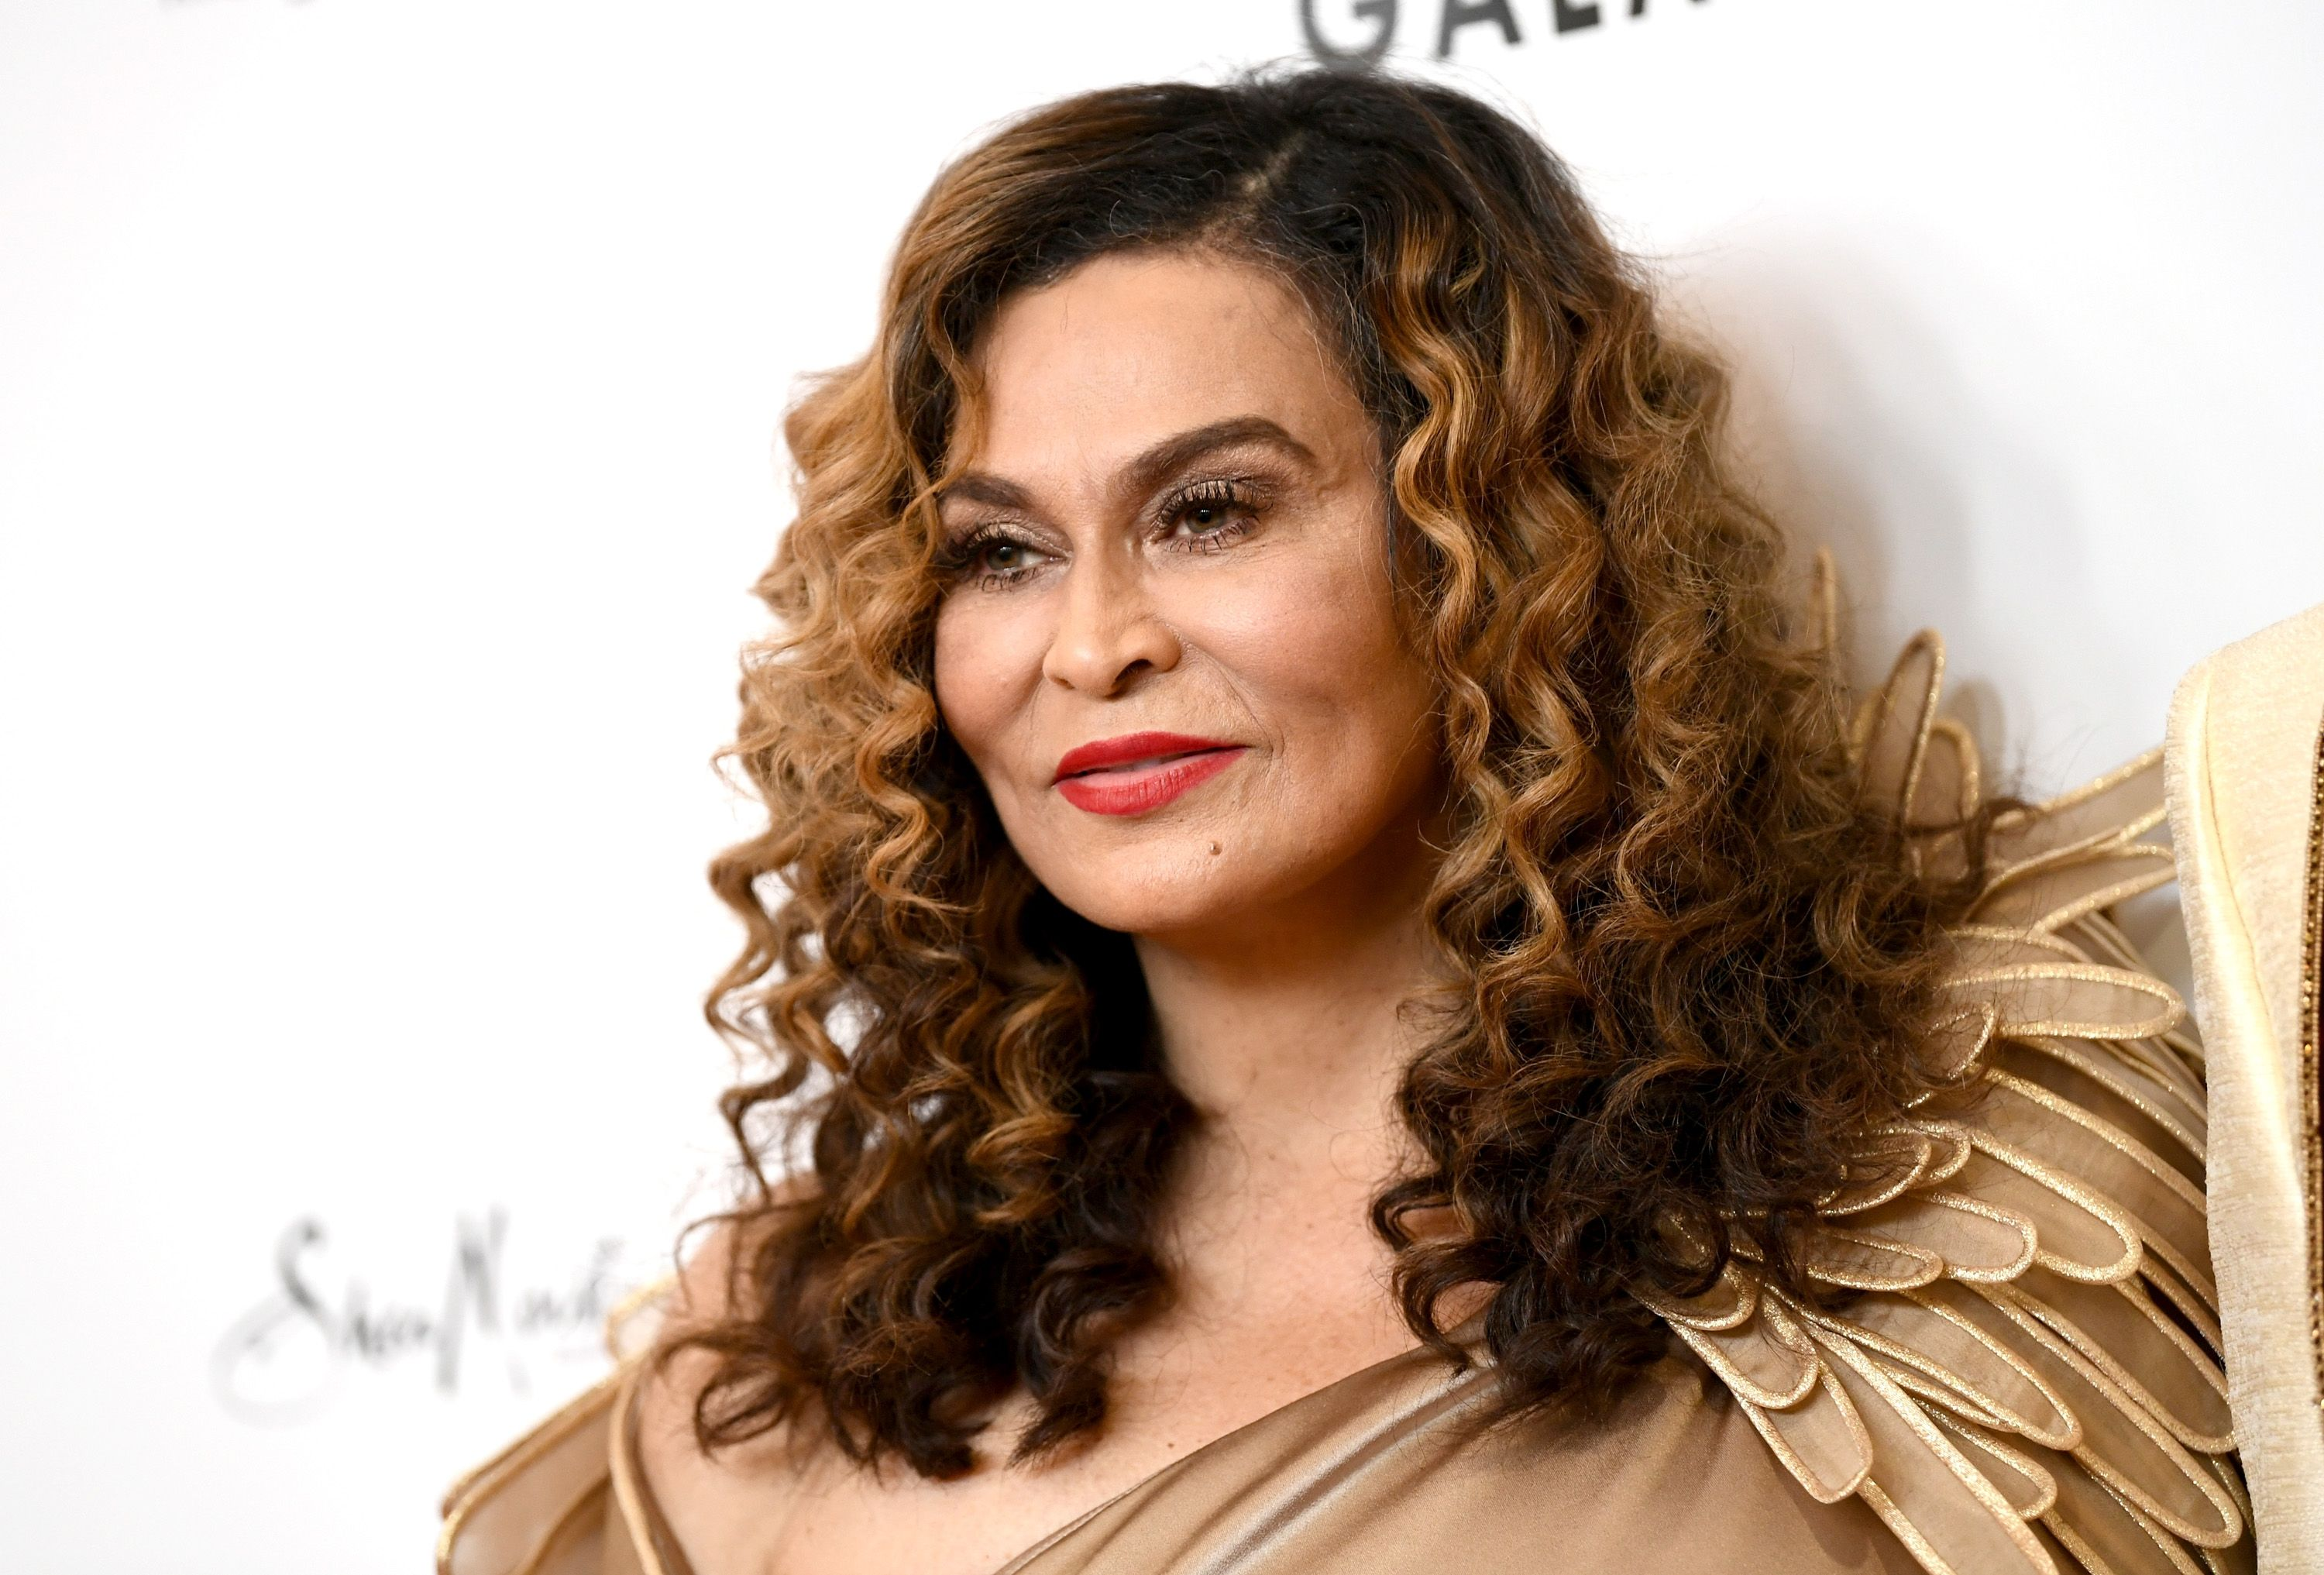 Tina Knowles at WACO Theater's 2nd Annual Wearable Art Gala on March 17, 2018. | Source: Getty Images